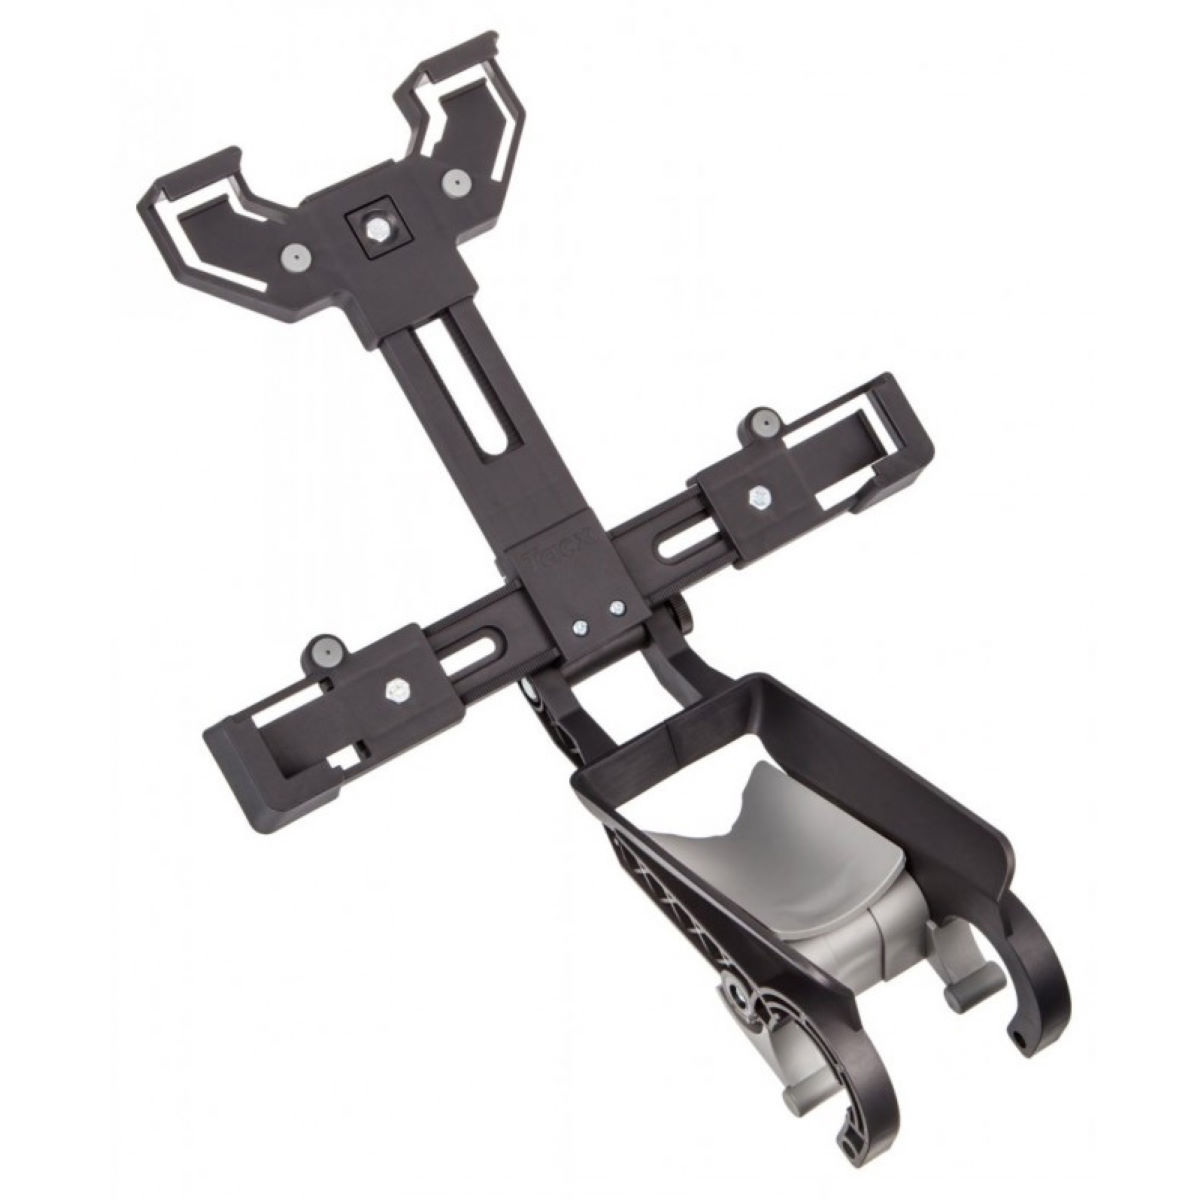 Support de fixation Tacx (pour tablettes) - Option 1 Noir